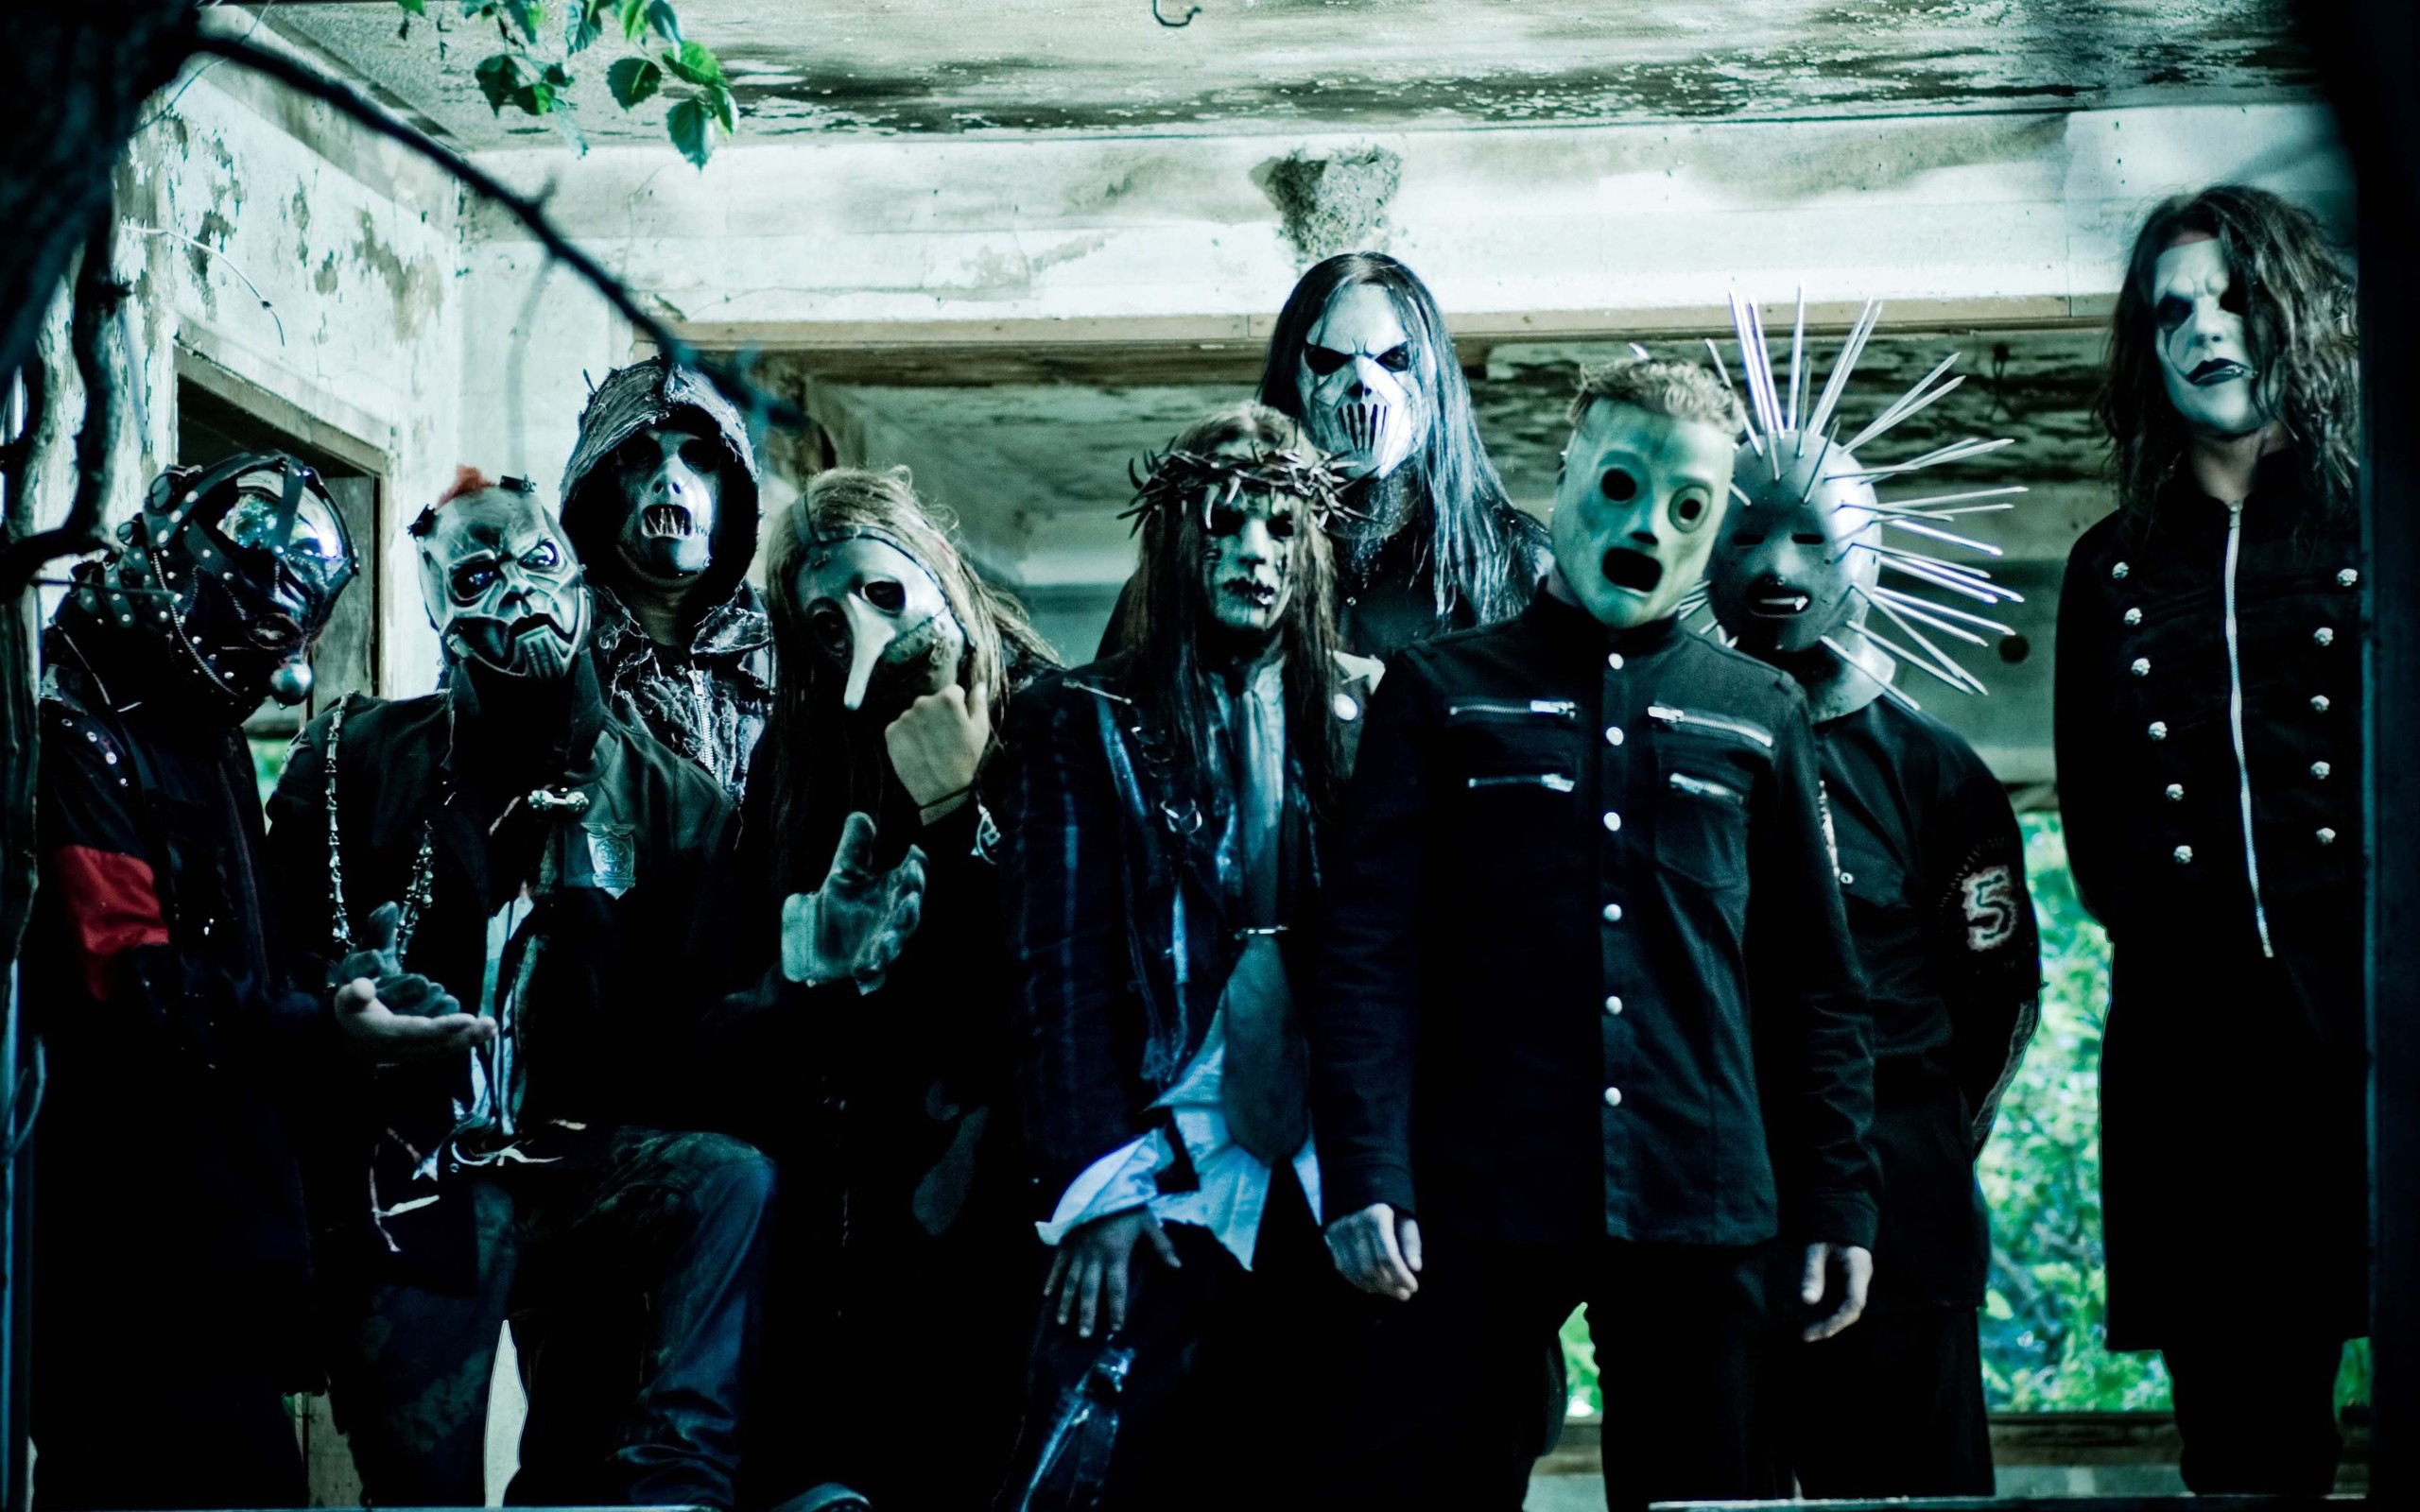 Slipknot Wallpaper Slipknot Wallpaper Slipknot Wallpaper ...